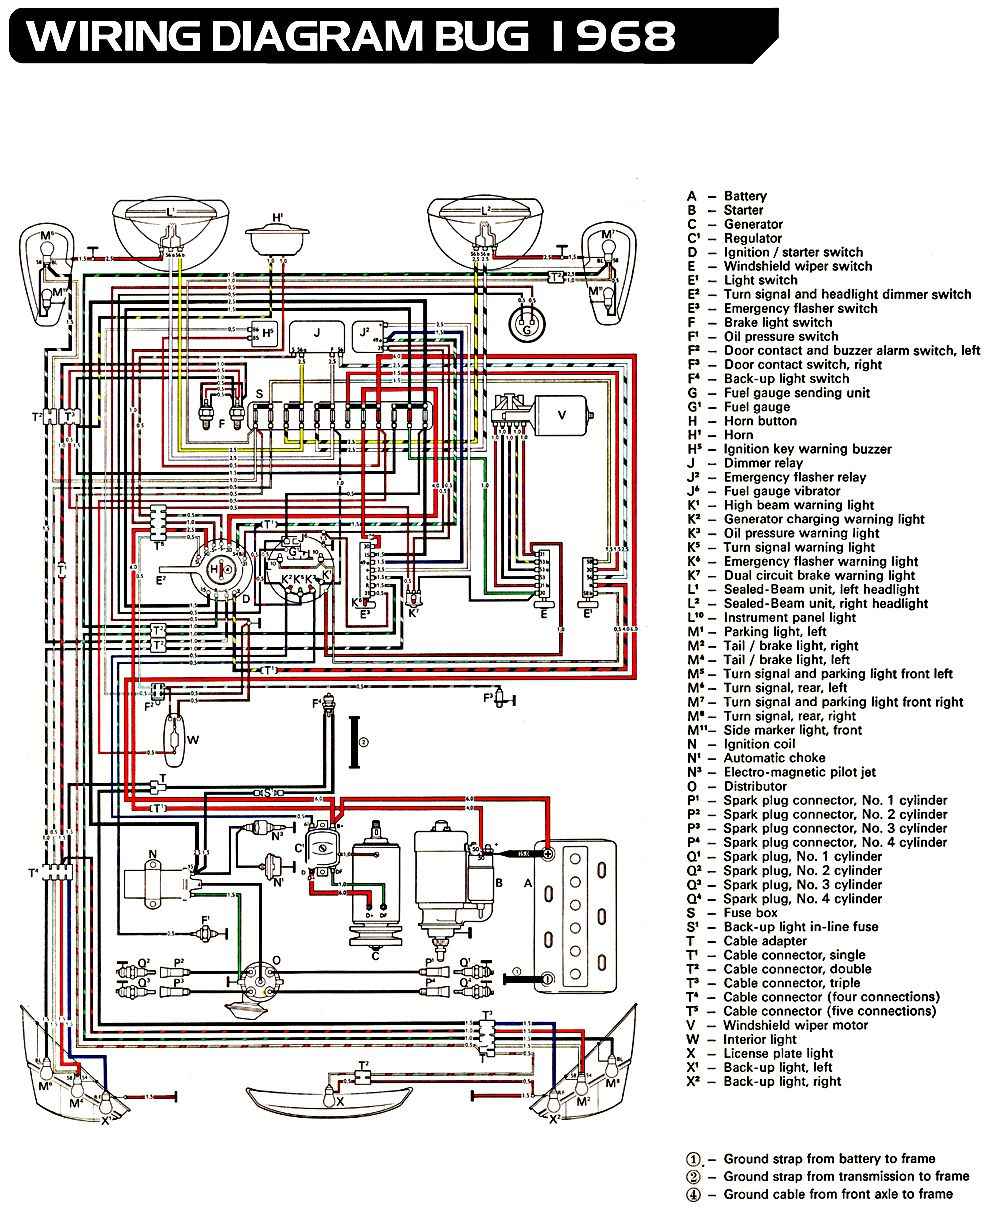 73 Vw Beetle Wiring Diagram Wiring Schematic Database